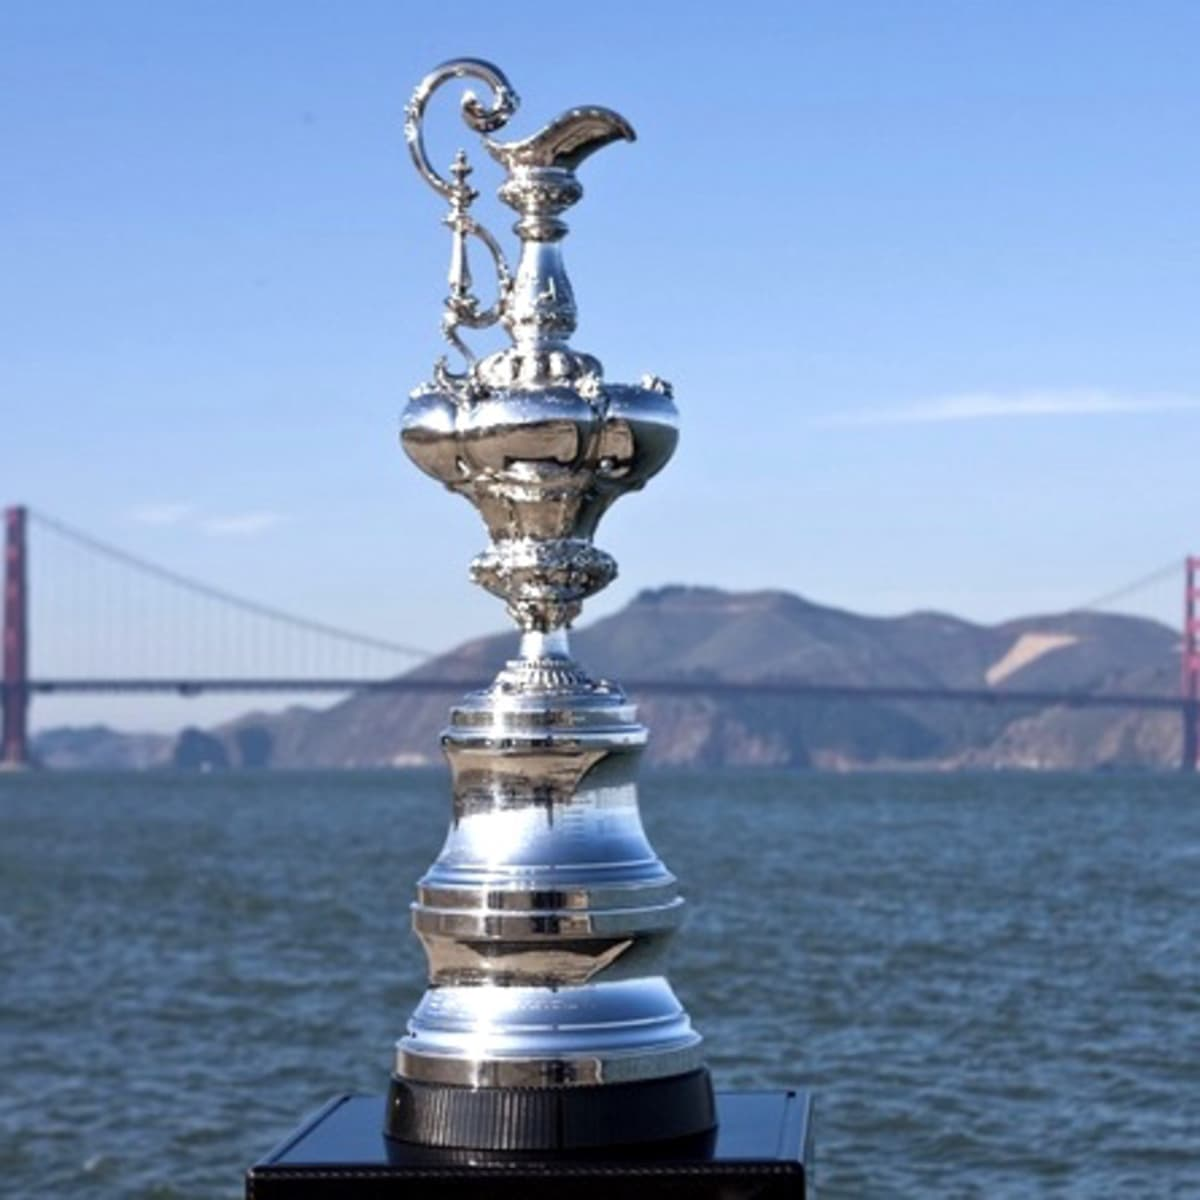 Houston, Americas Cup, July 2017